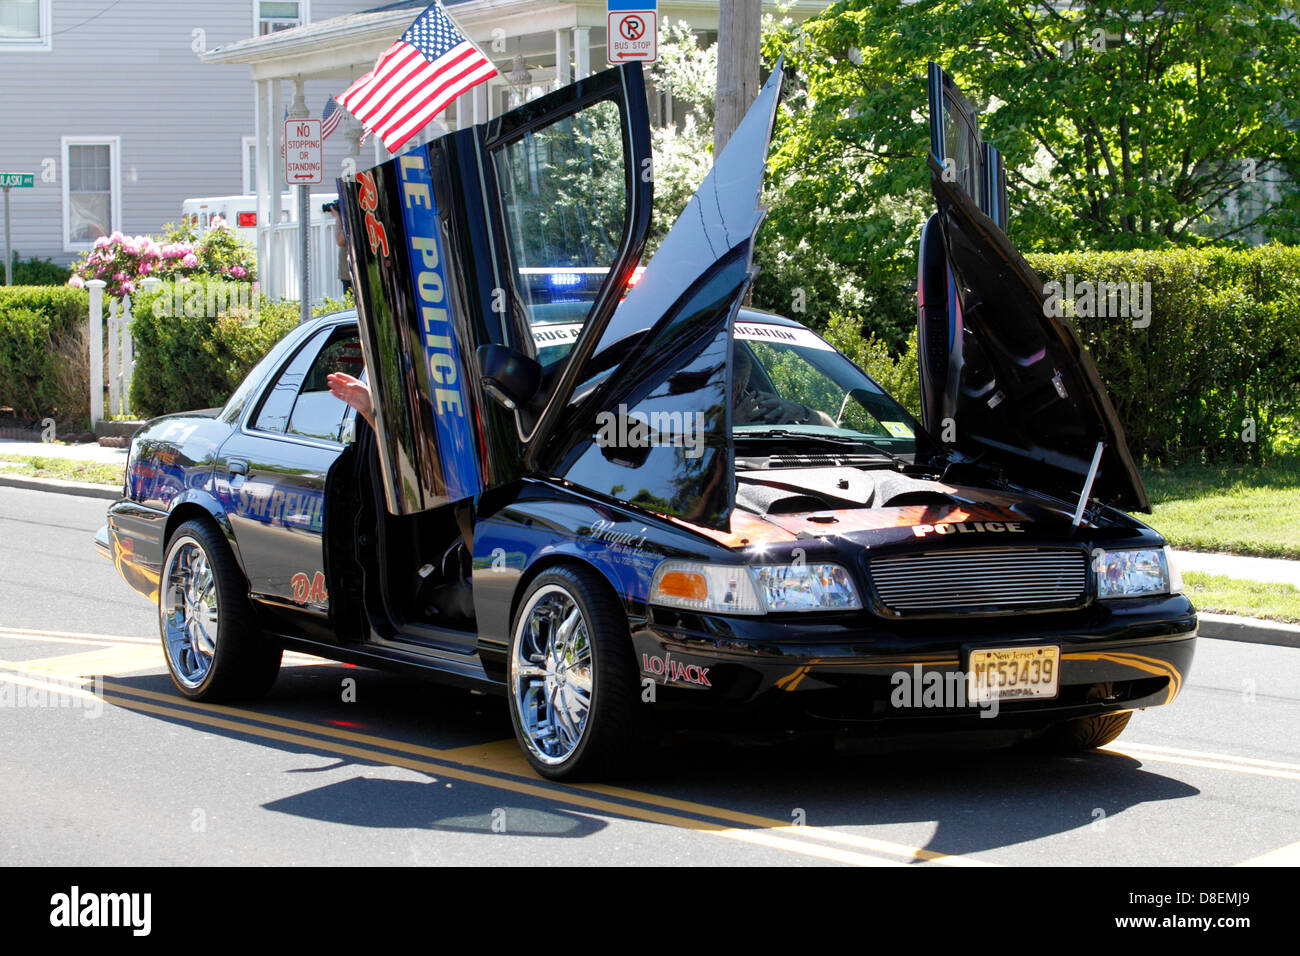 tricked out sayreville police car in memorial day parade in stock